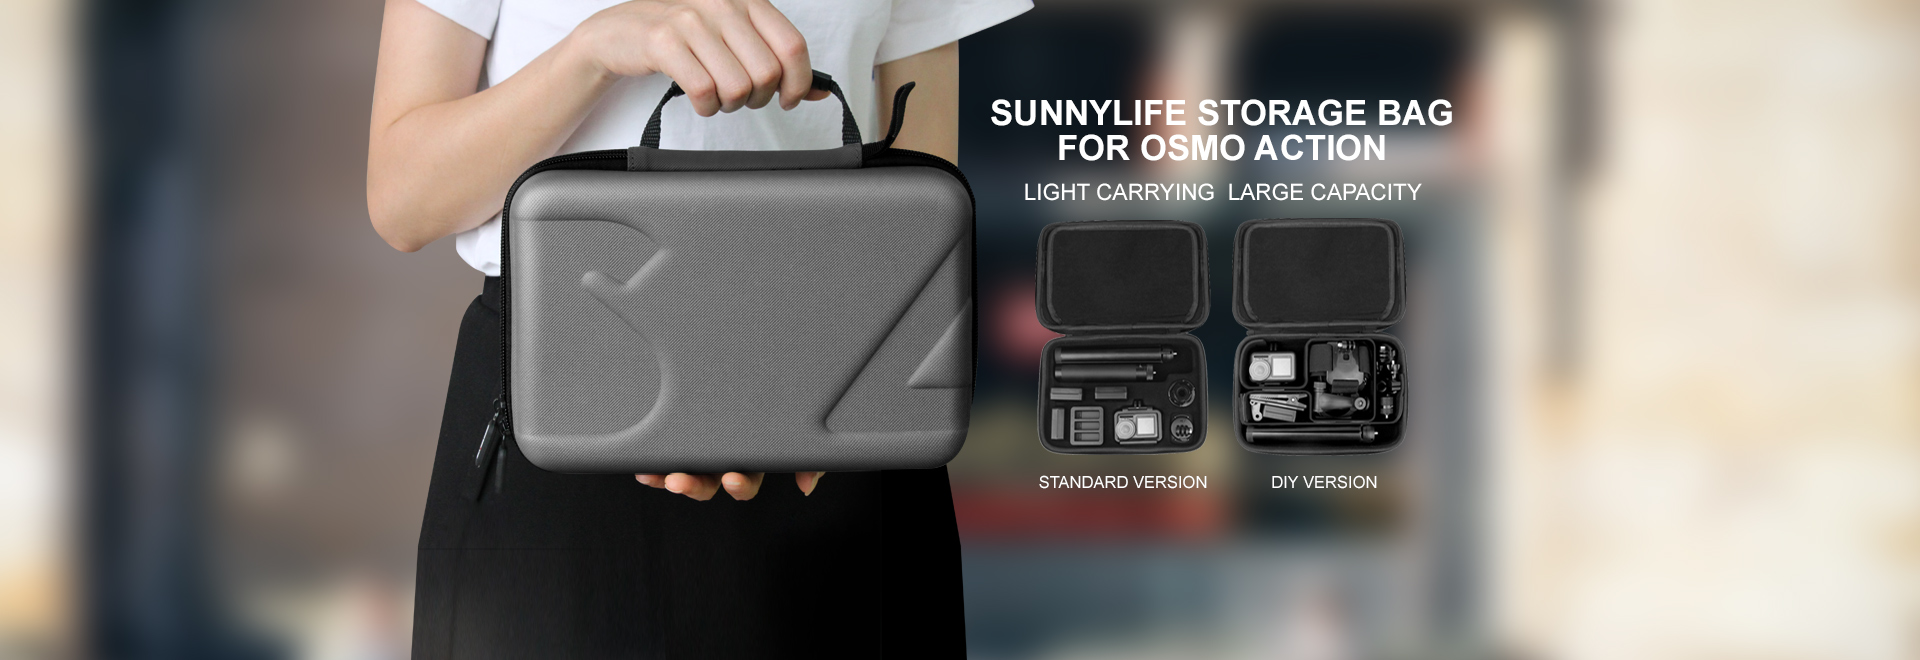 Sunnylife Storage Bag for OSMO ACTION